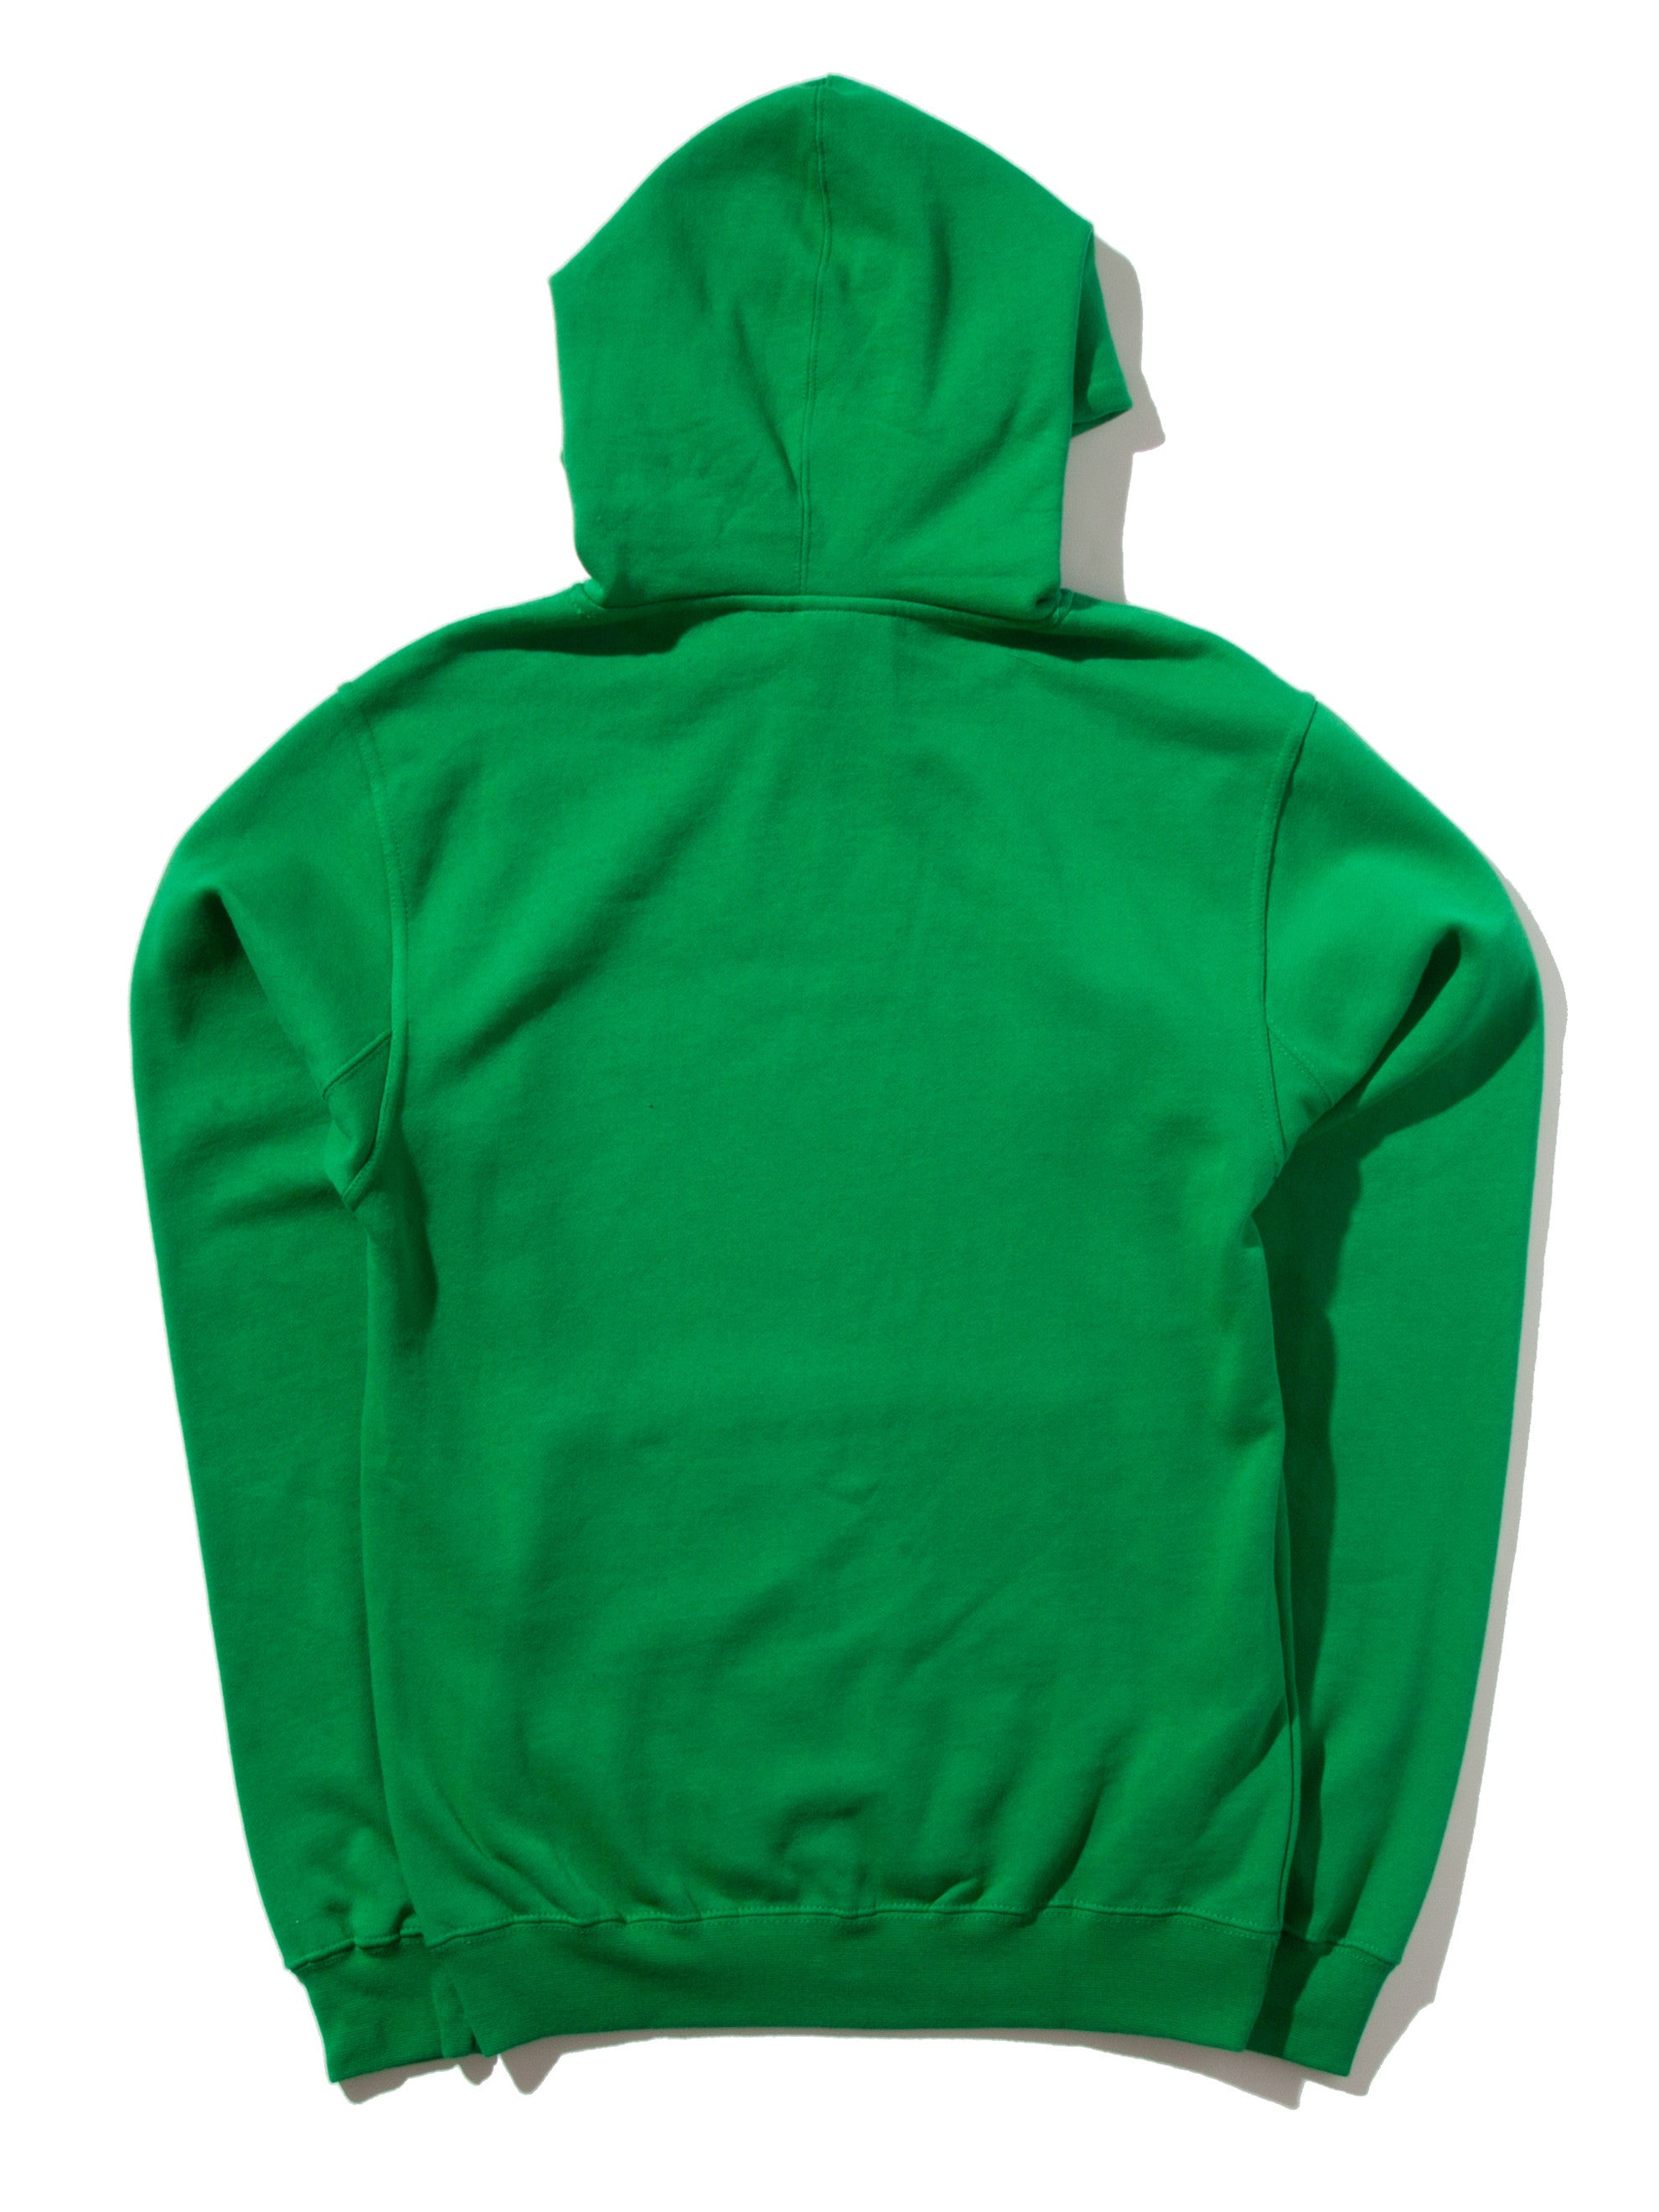 Green Meet Meat Pullover Hooded Sweatshirt 5